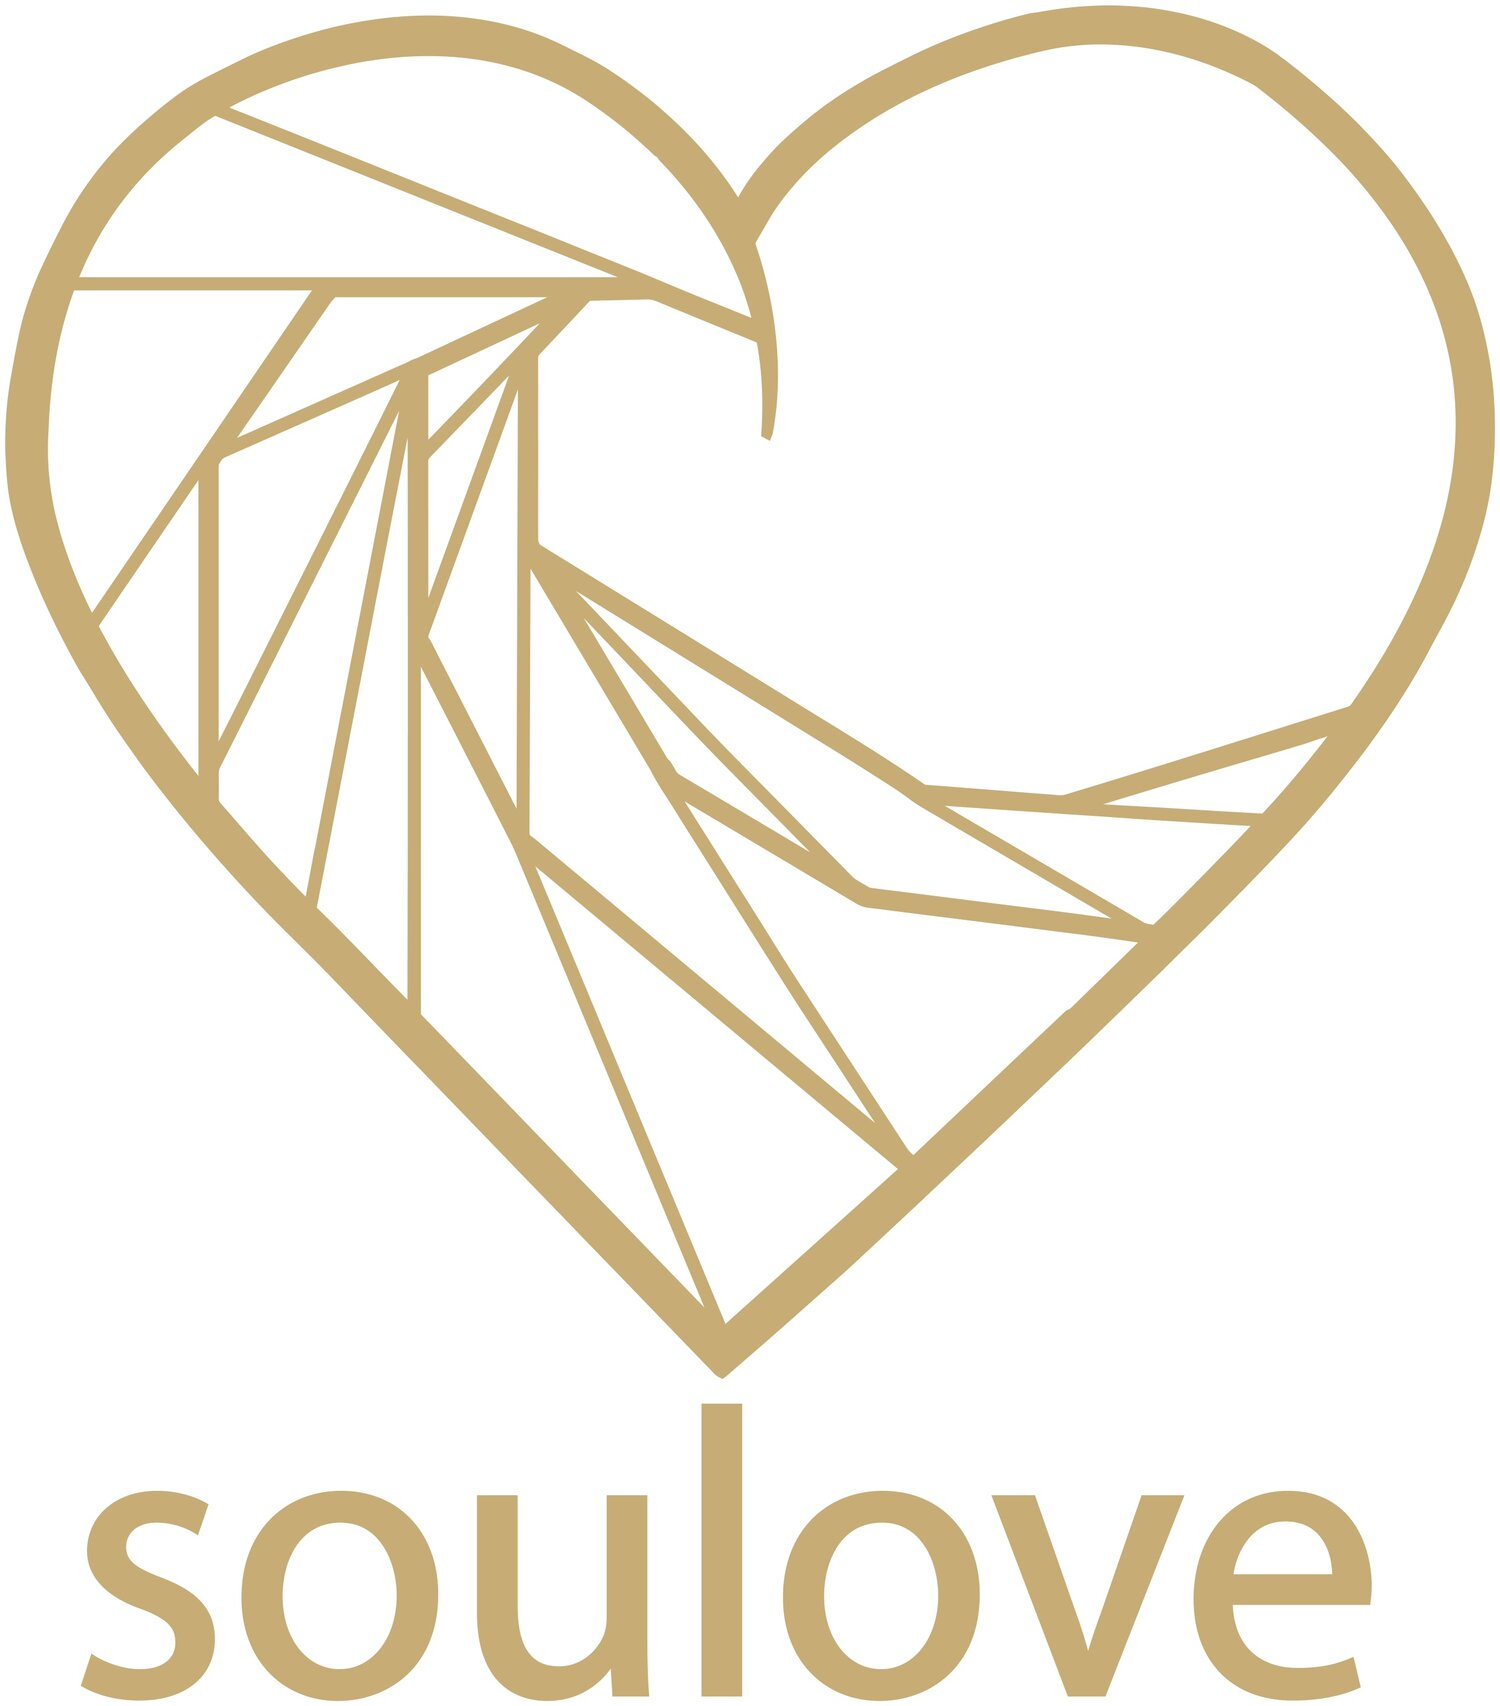 soulove